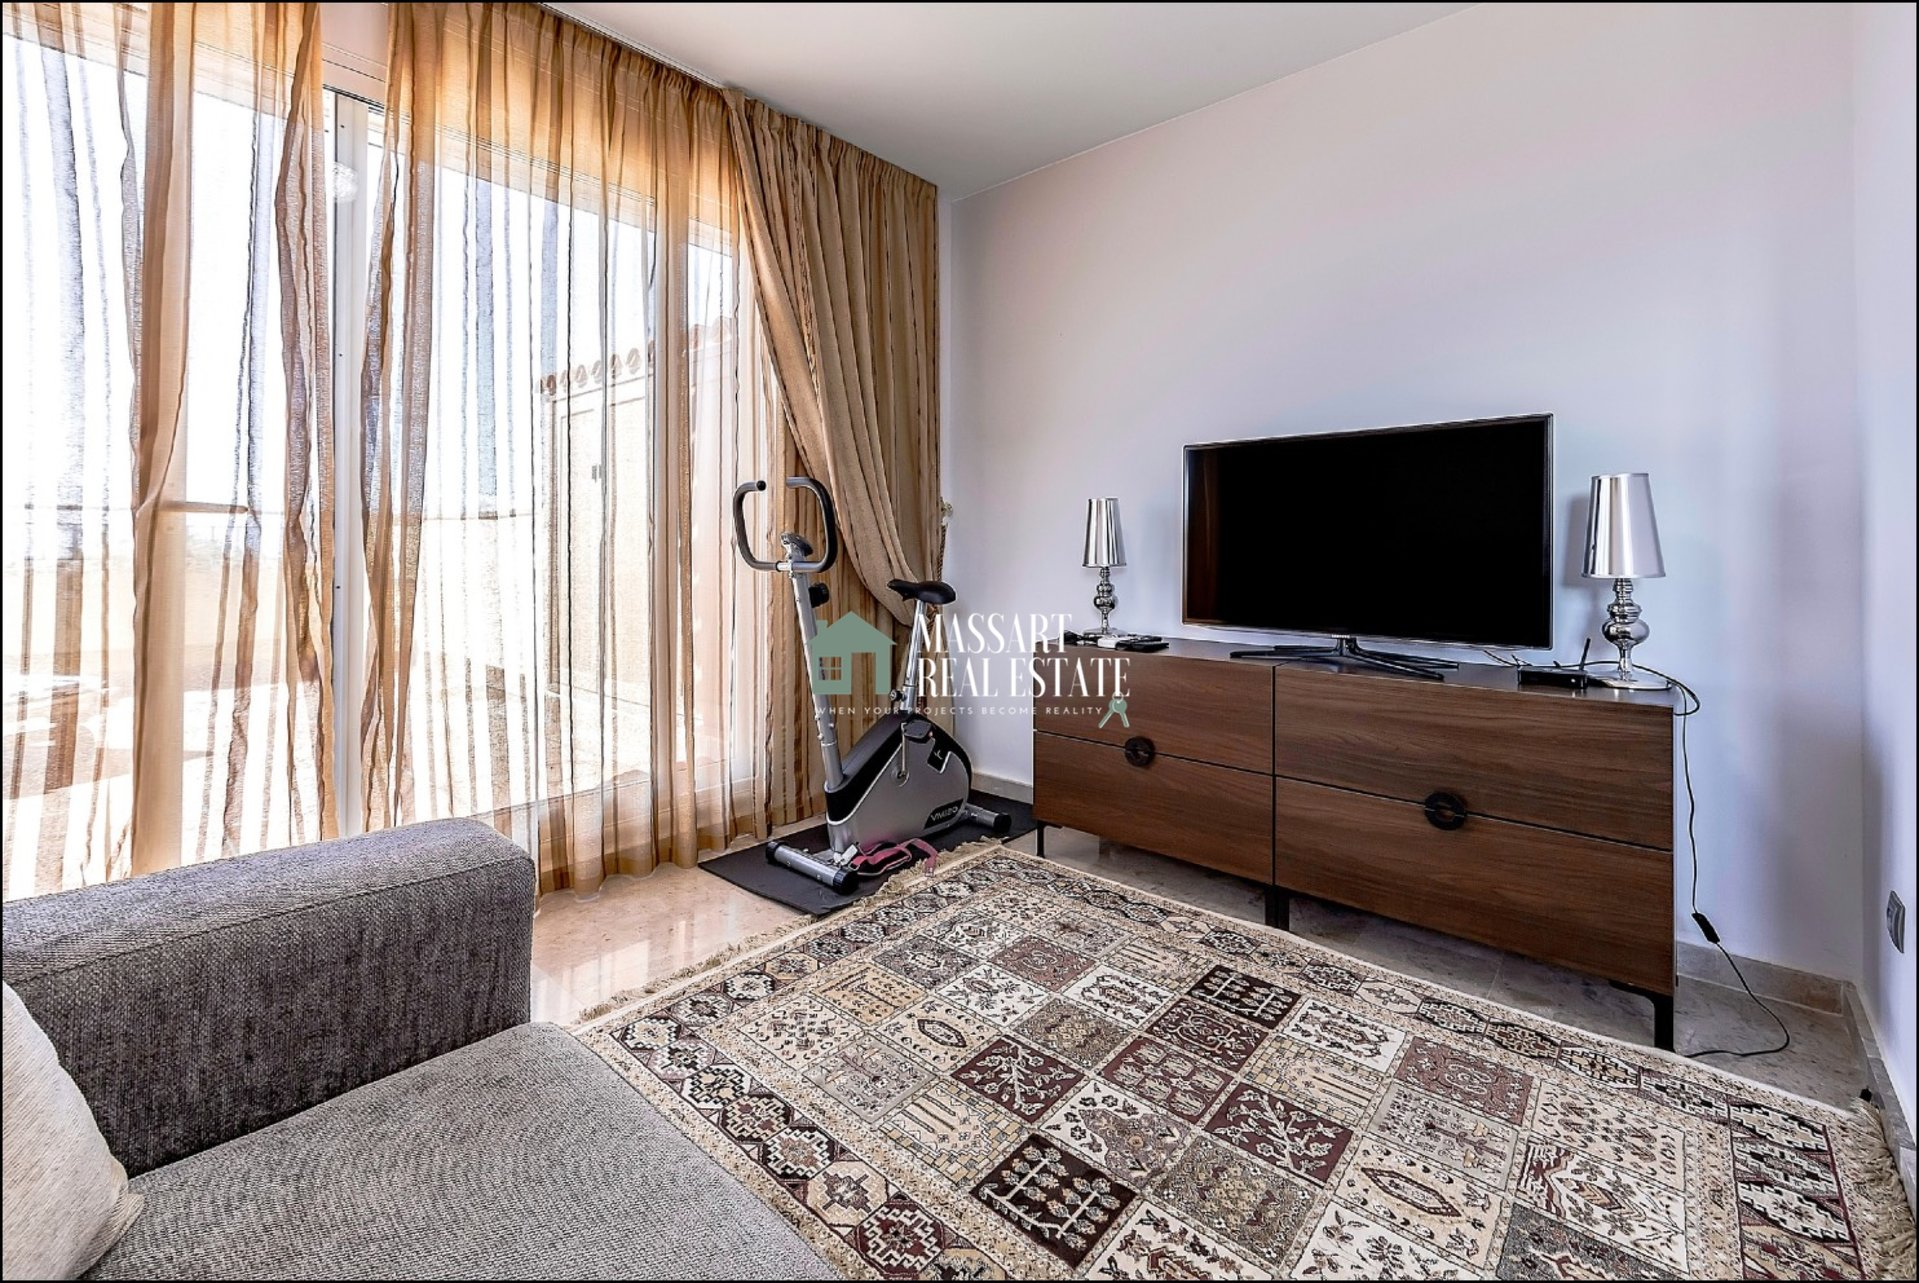 For sale in the Residential Playa La Arena (Puerto De Santiago), 97 m2  fully furnished duplex.